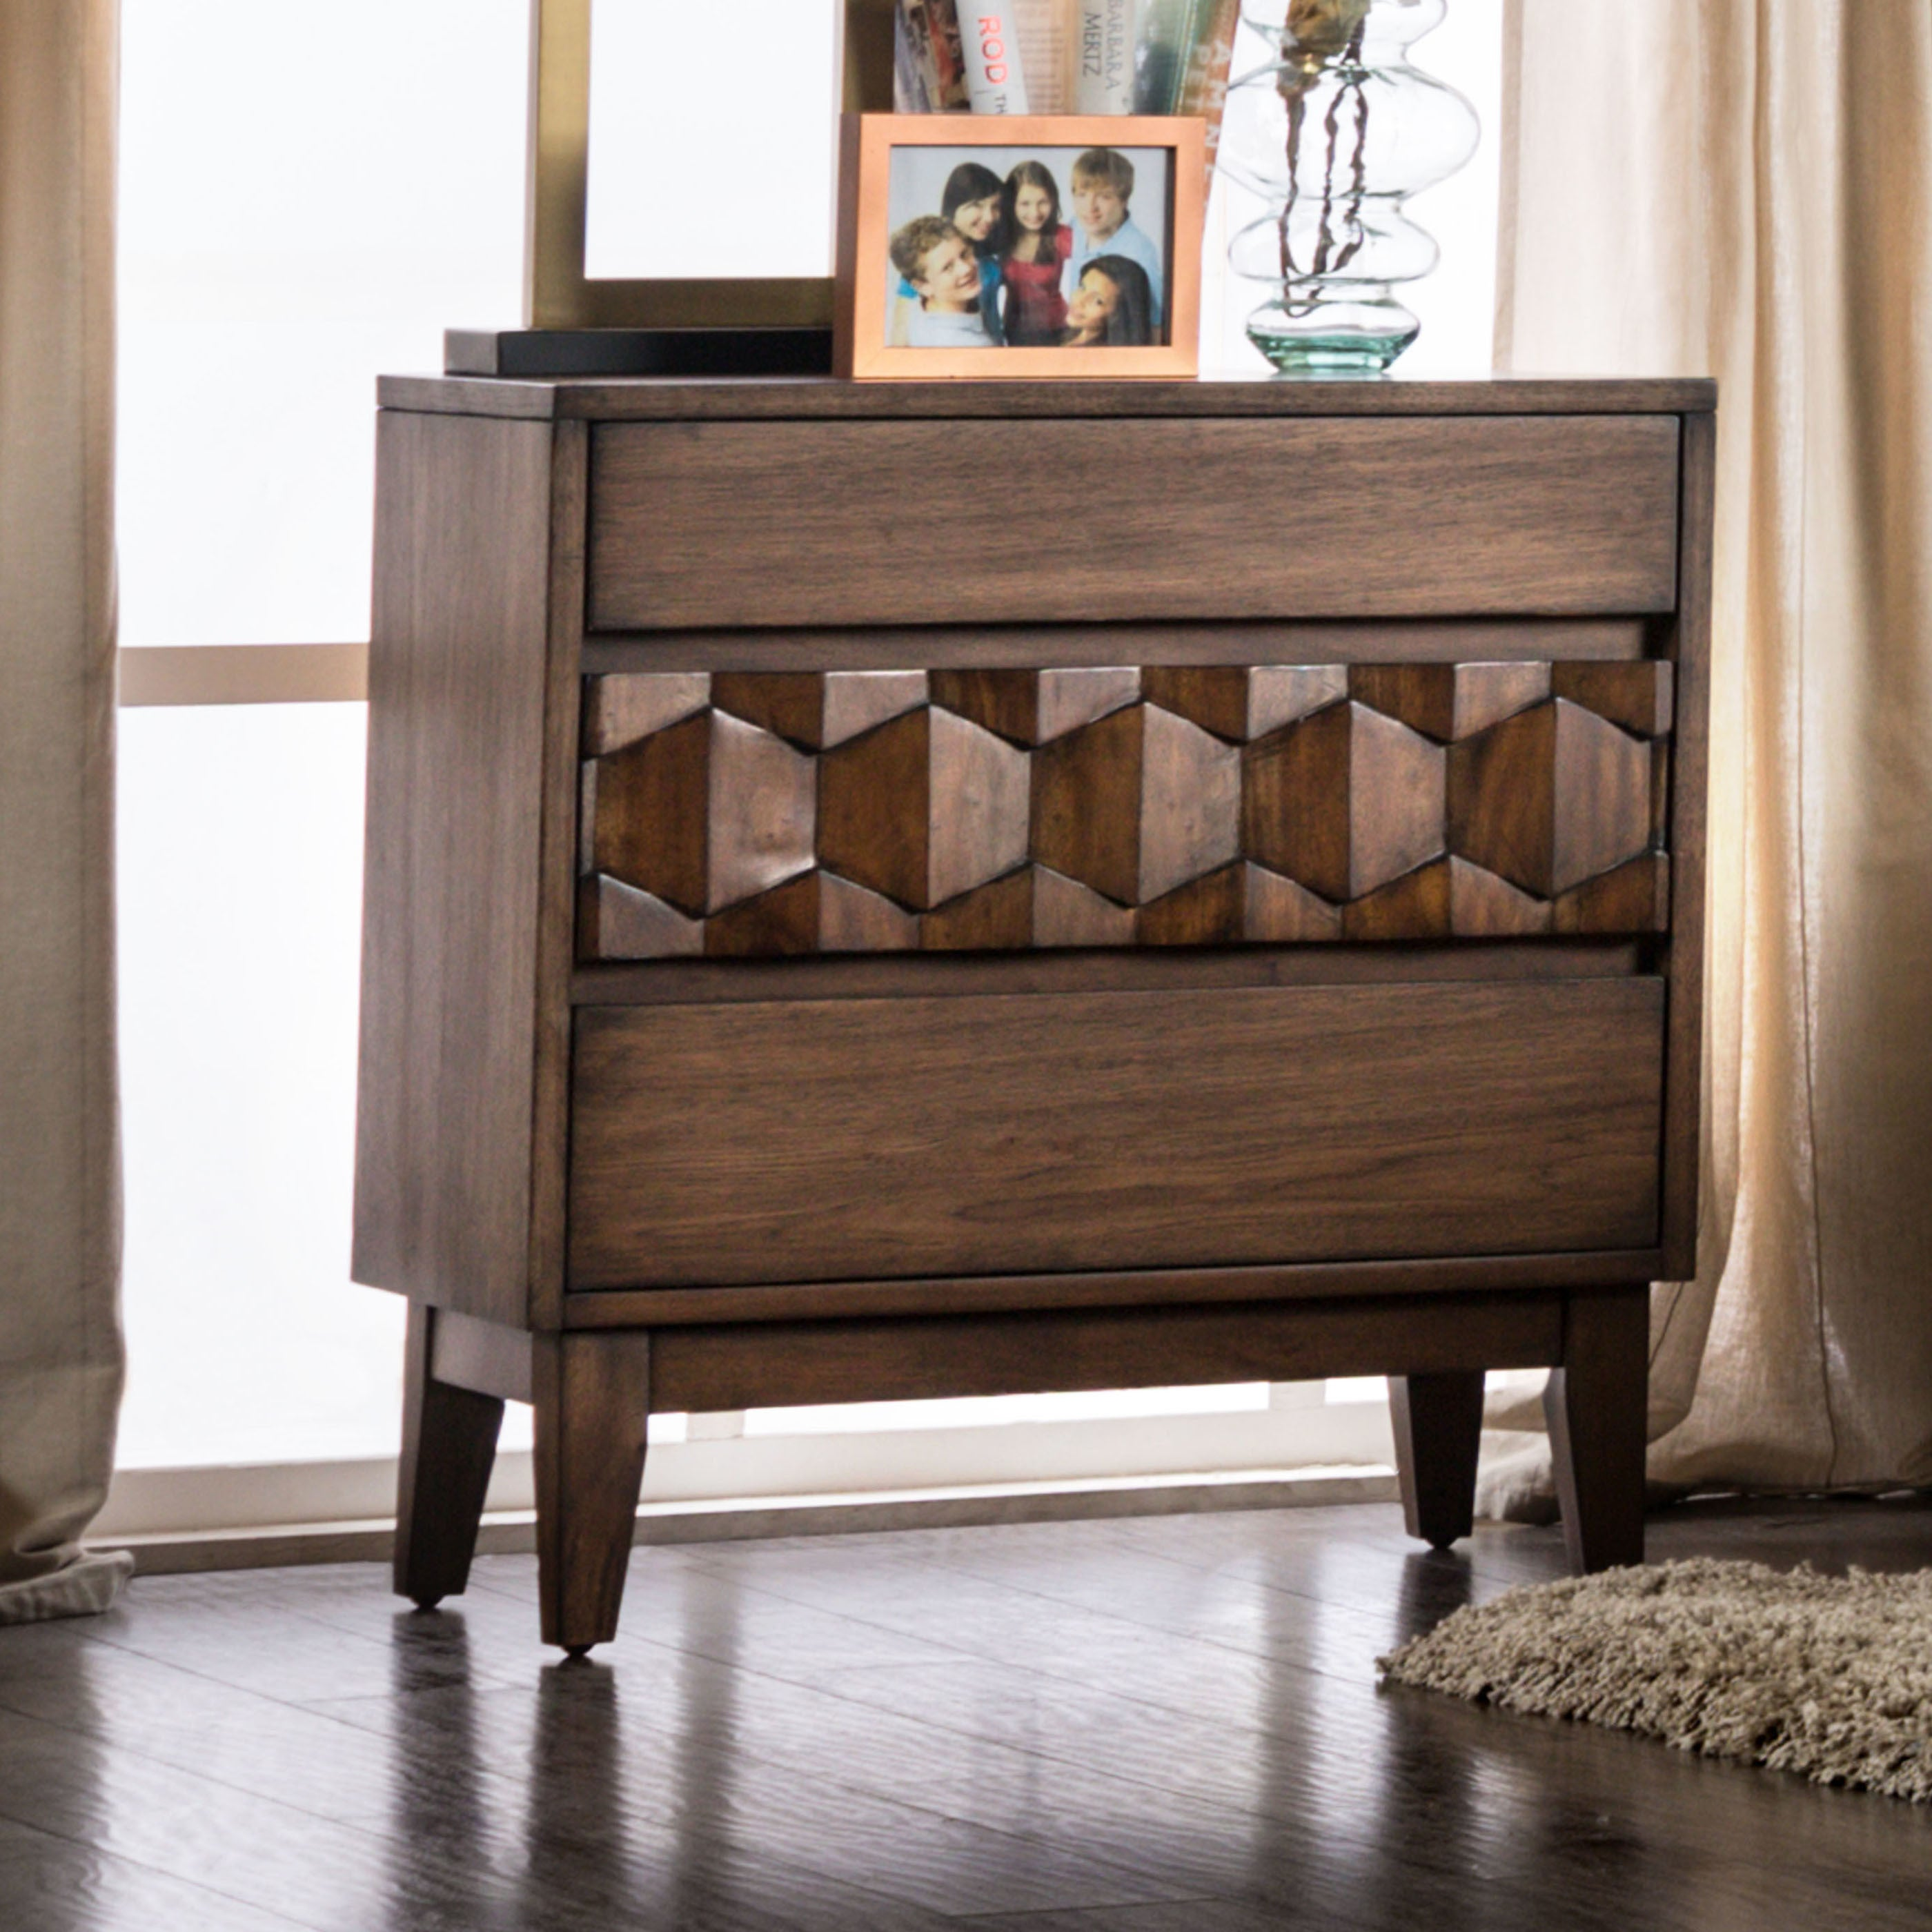 Beau Shop Furniture Of America Curtiz Contemporary Laser Cut 3 Drawer Nightstand    On Sale   Free Shipping Today   Overstock.com   19978592